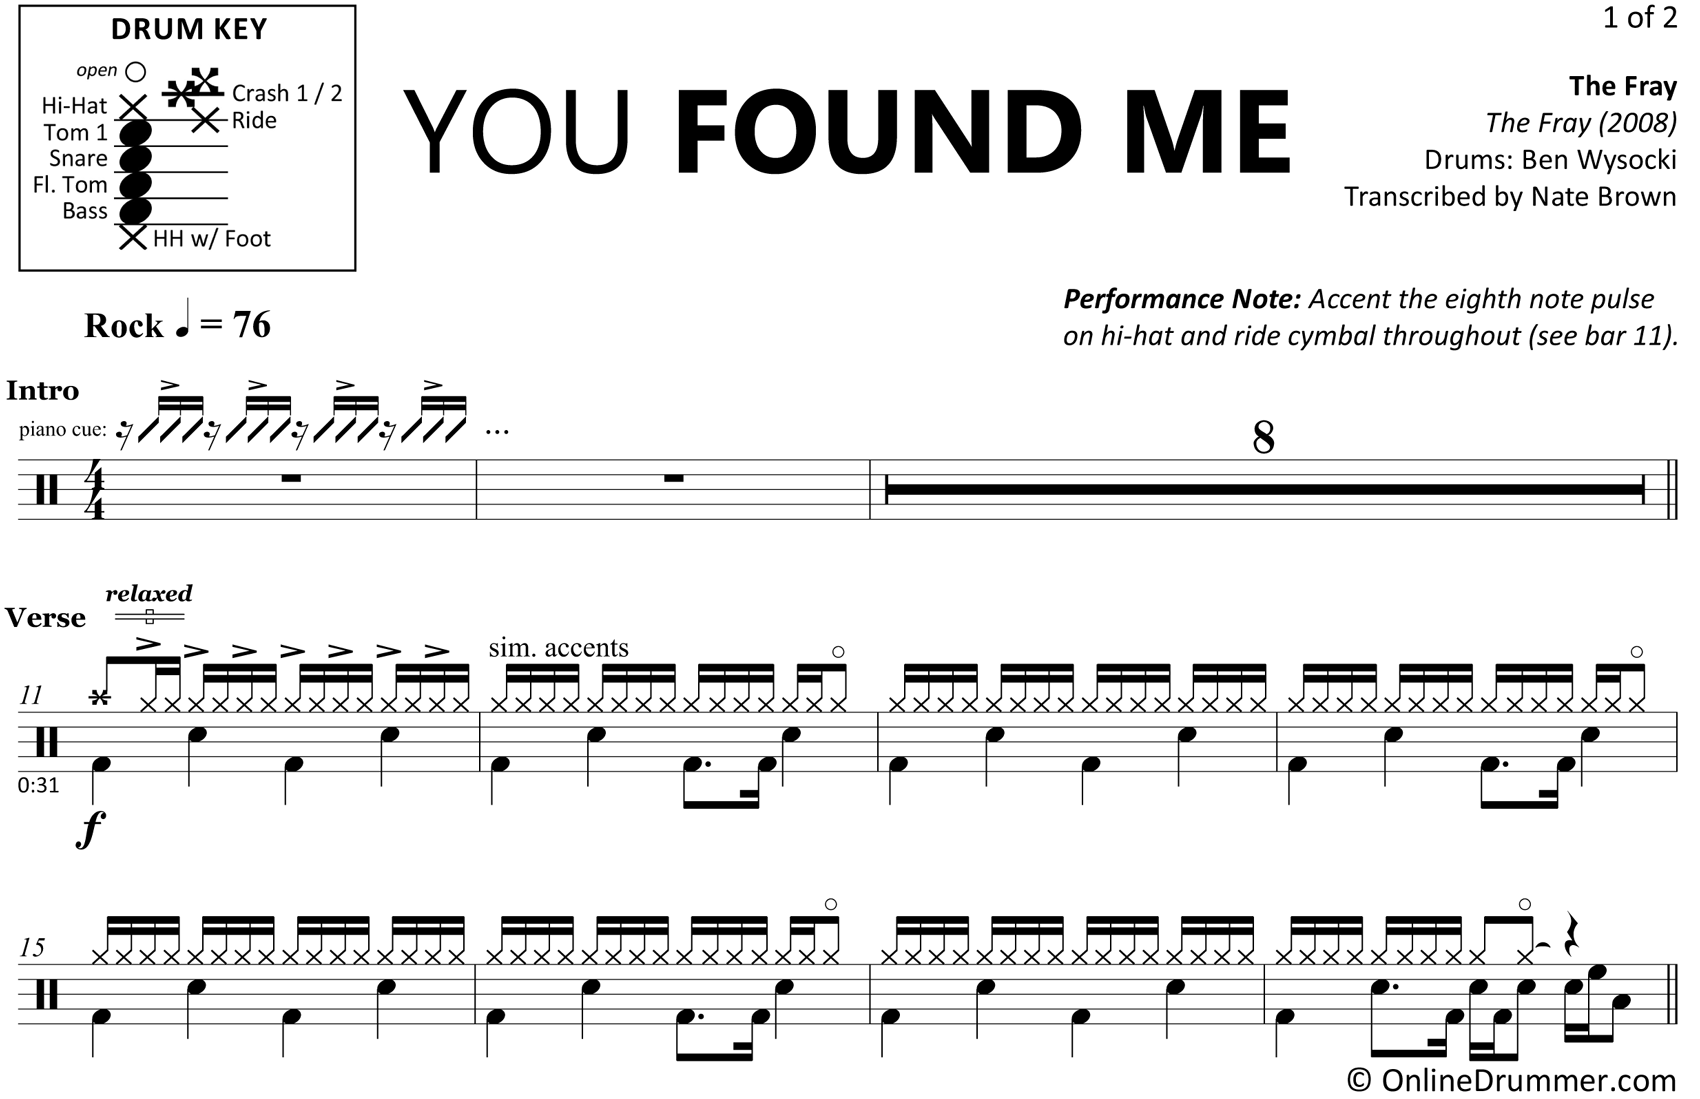 You Found Me - The Fray - Drum Sheet Music